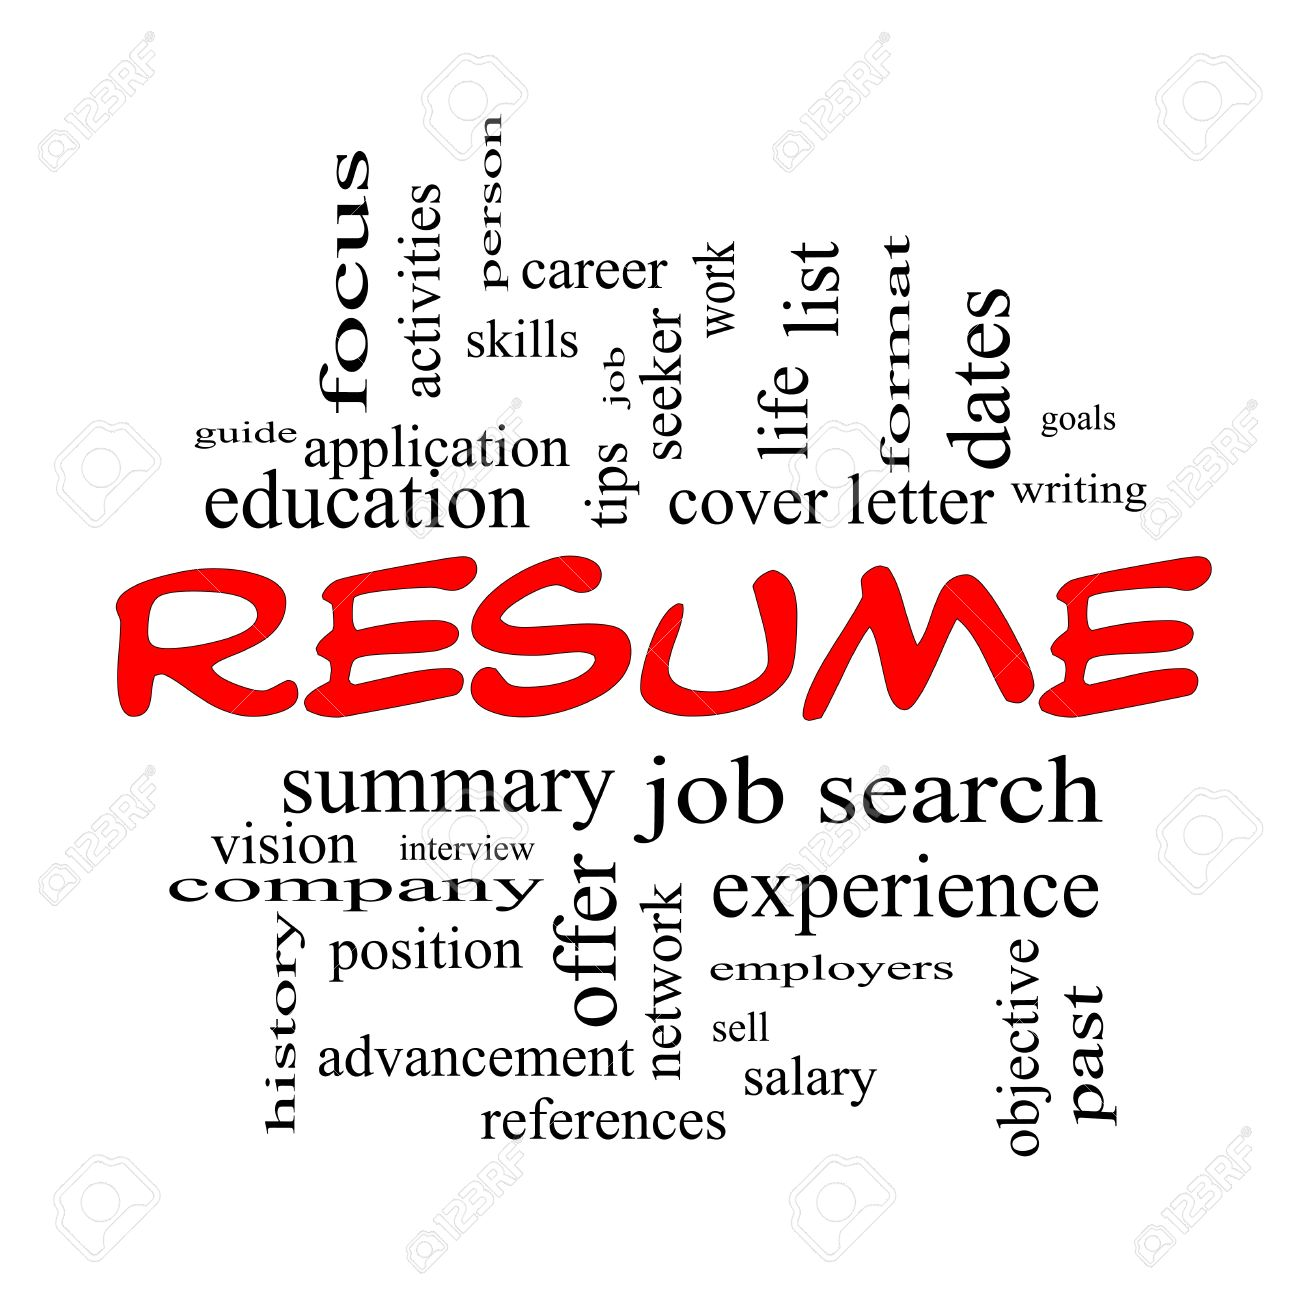 Free career resume